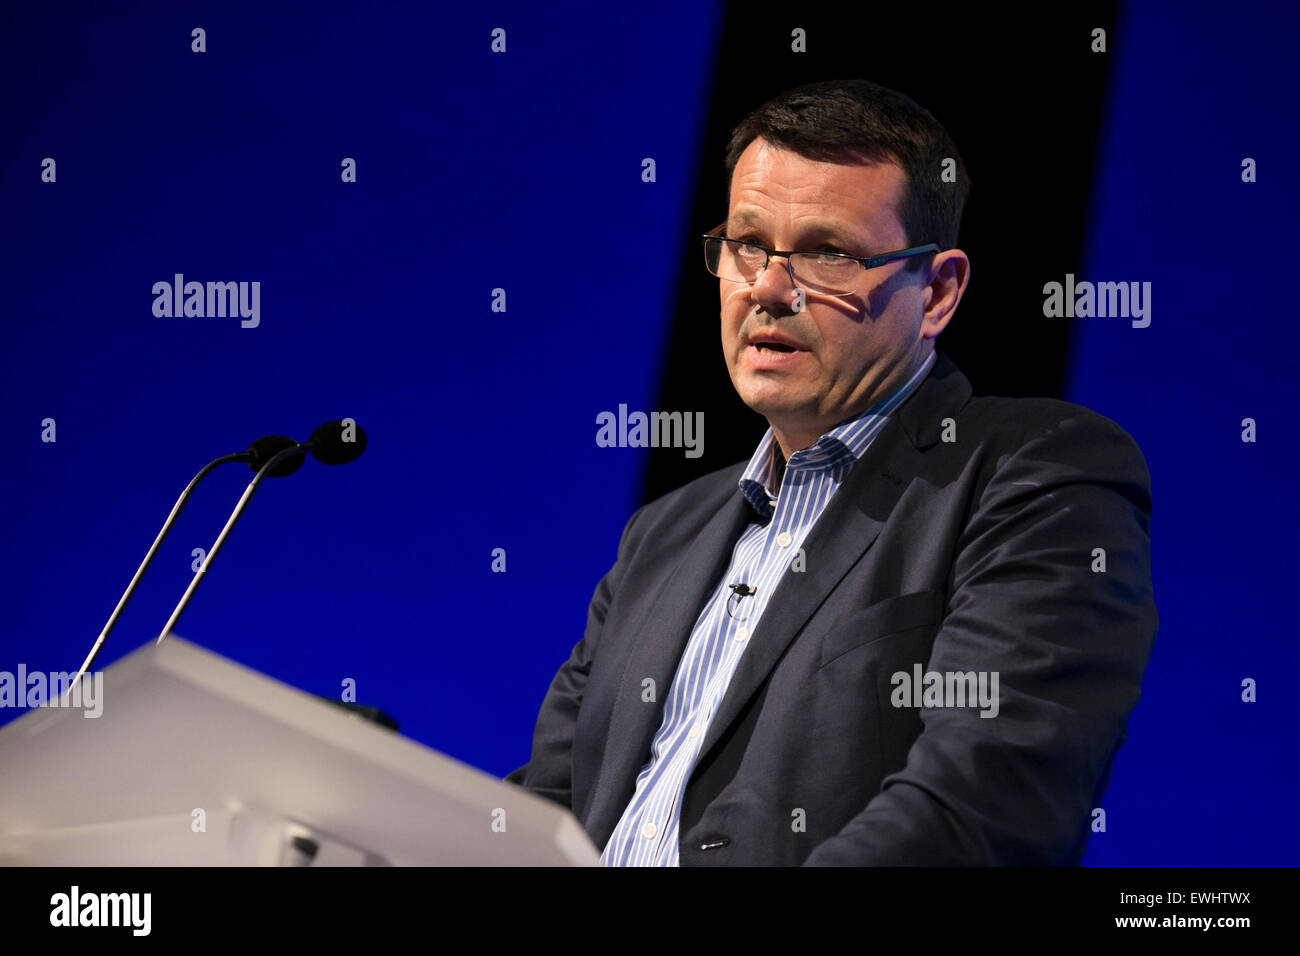 Charles Grundy Ð Chief Commercial Officer with Housing Partners. - Stock Image